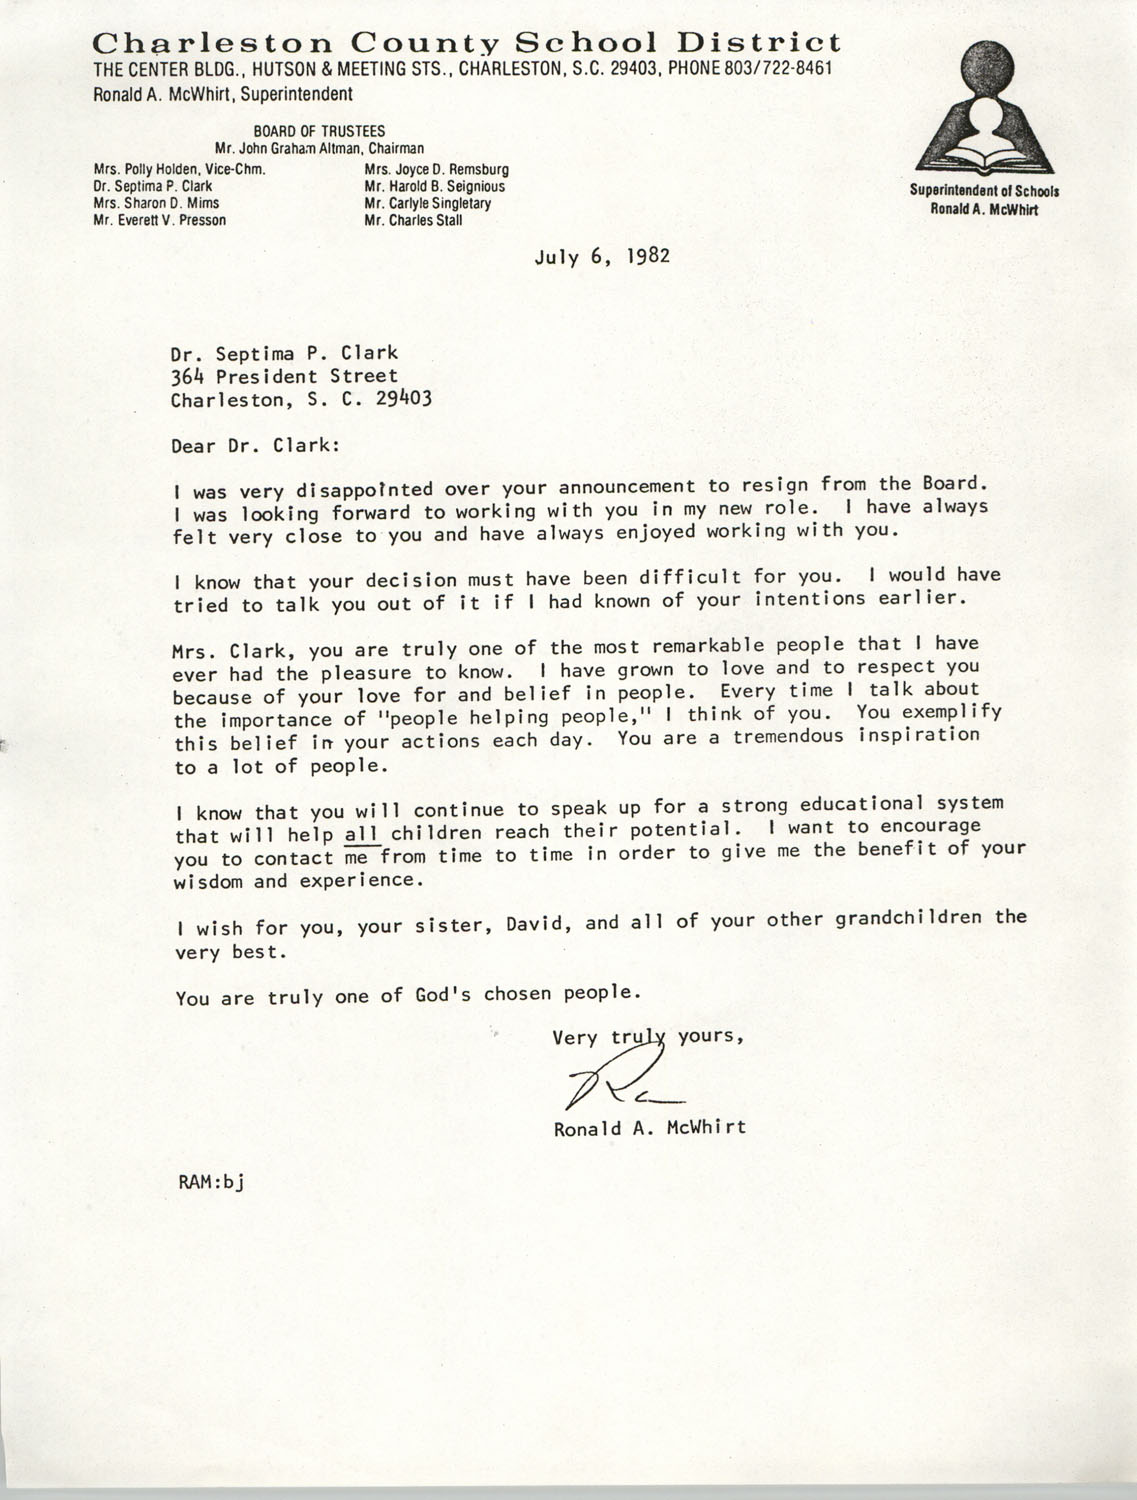 Letter from Ronald A. McWhirt to Septima P. Clark, July 6, 1982